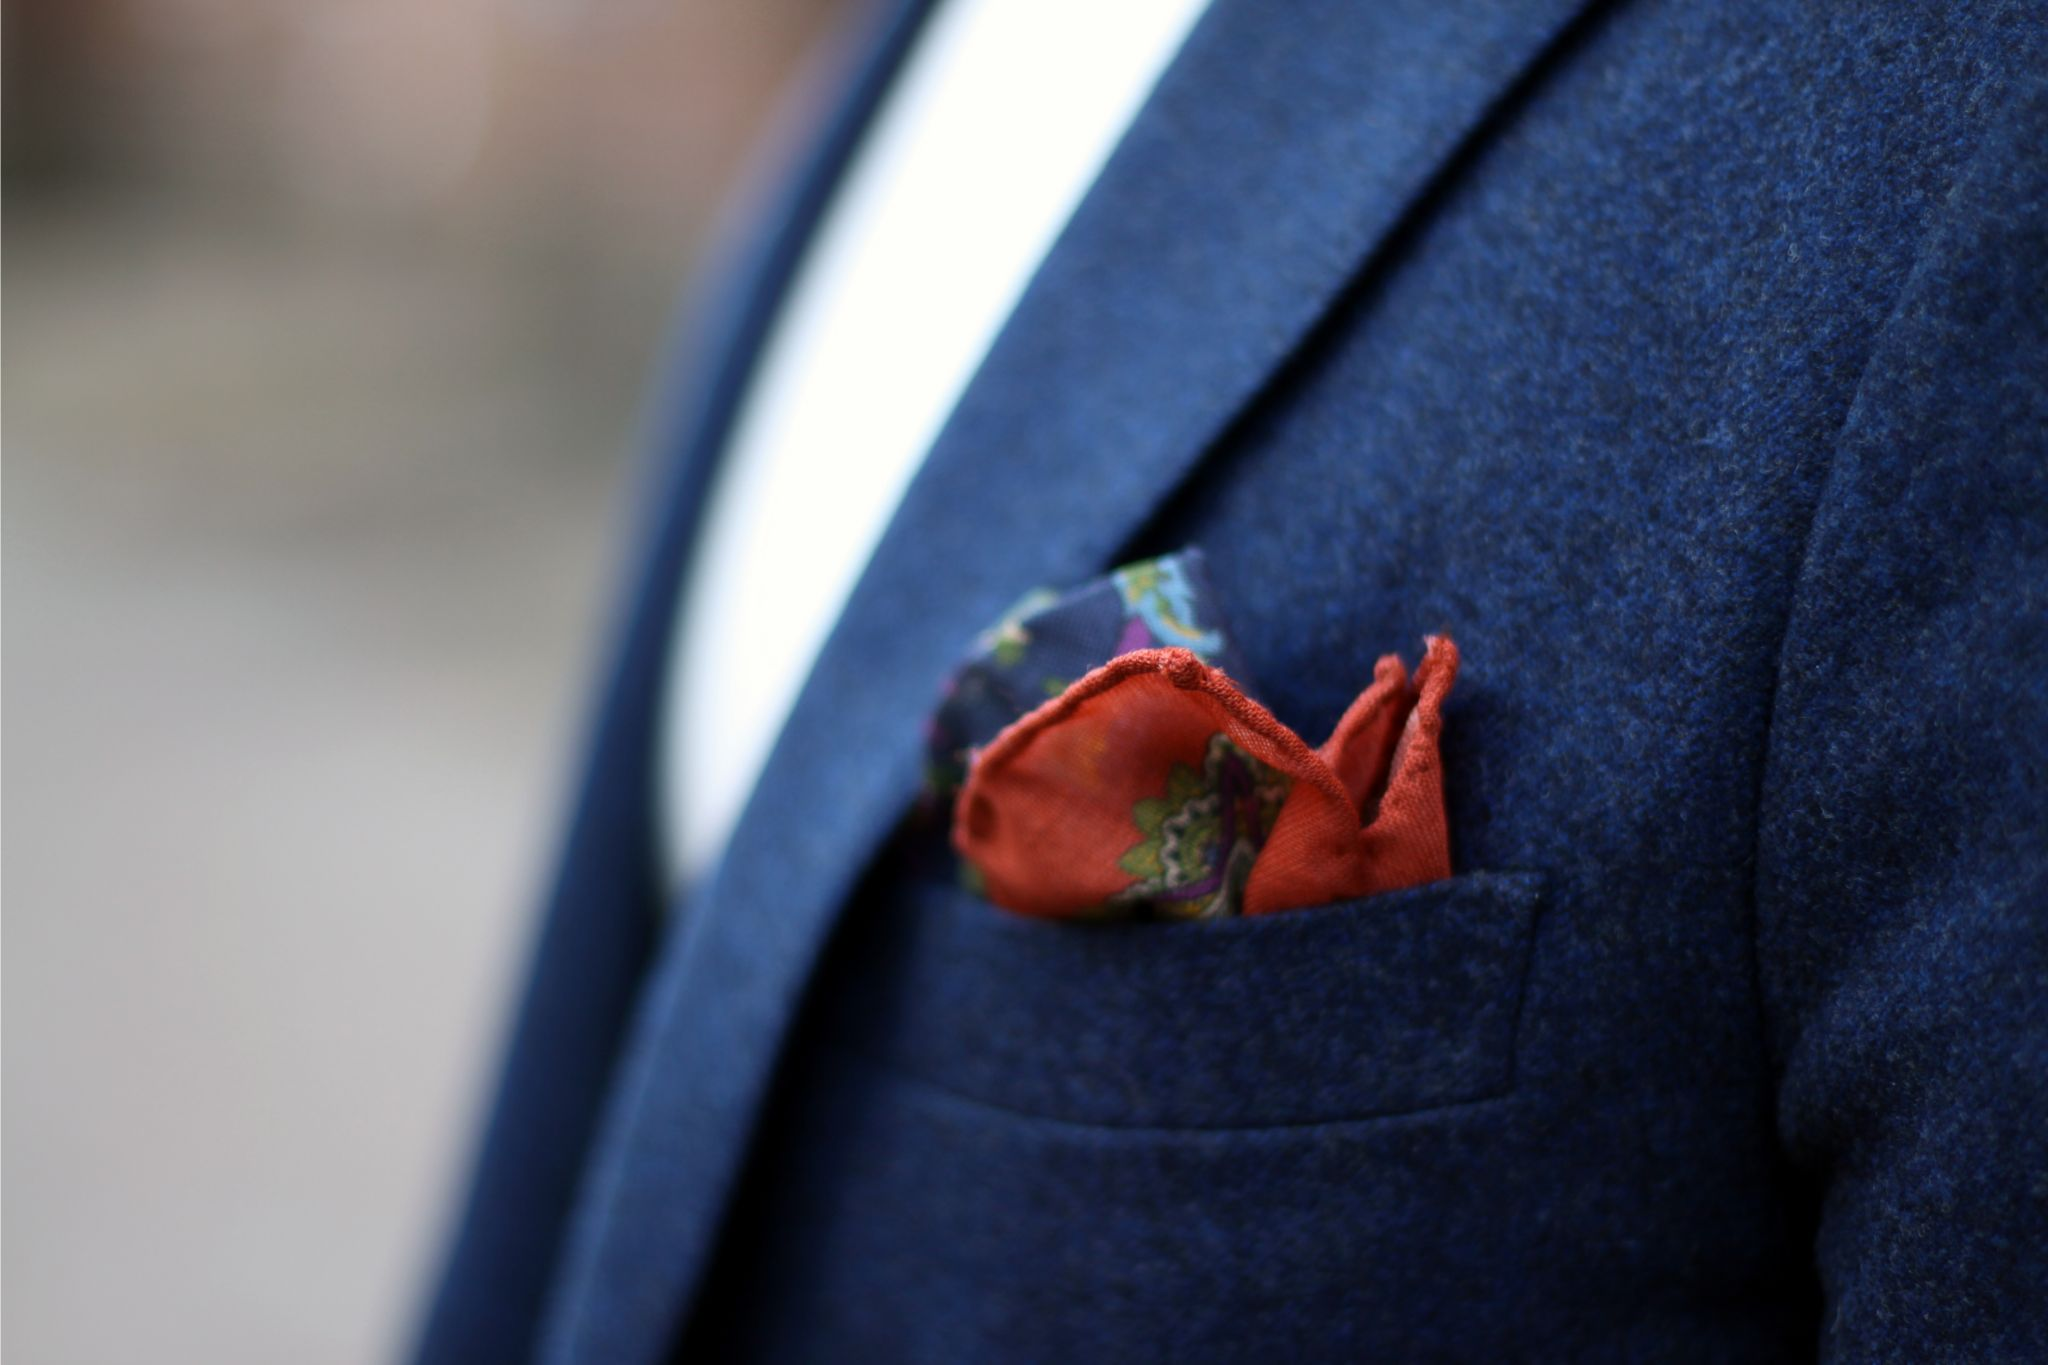 Drake's London pocket square with Mabro navy blue blazer